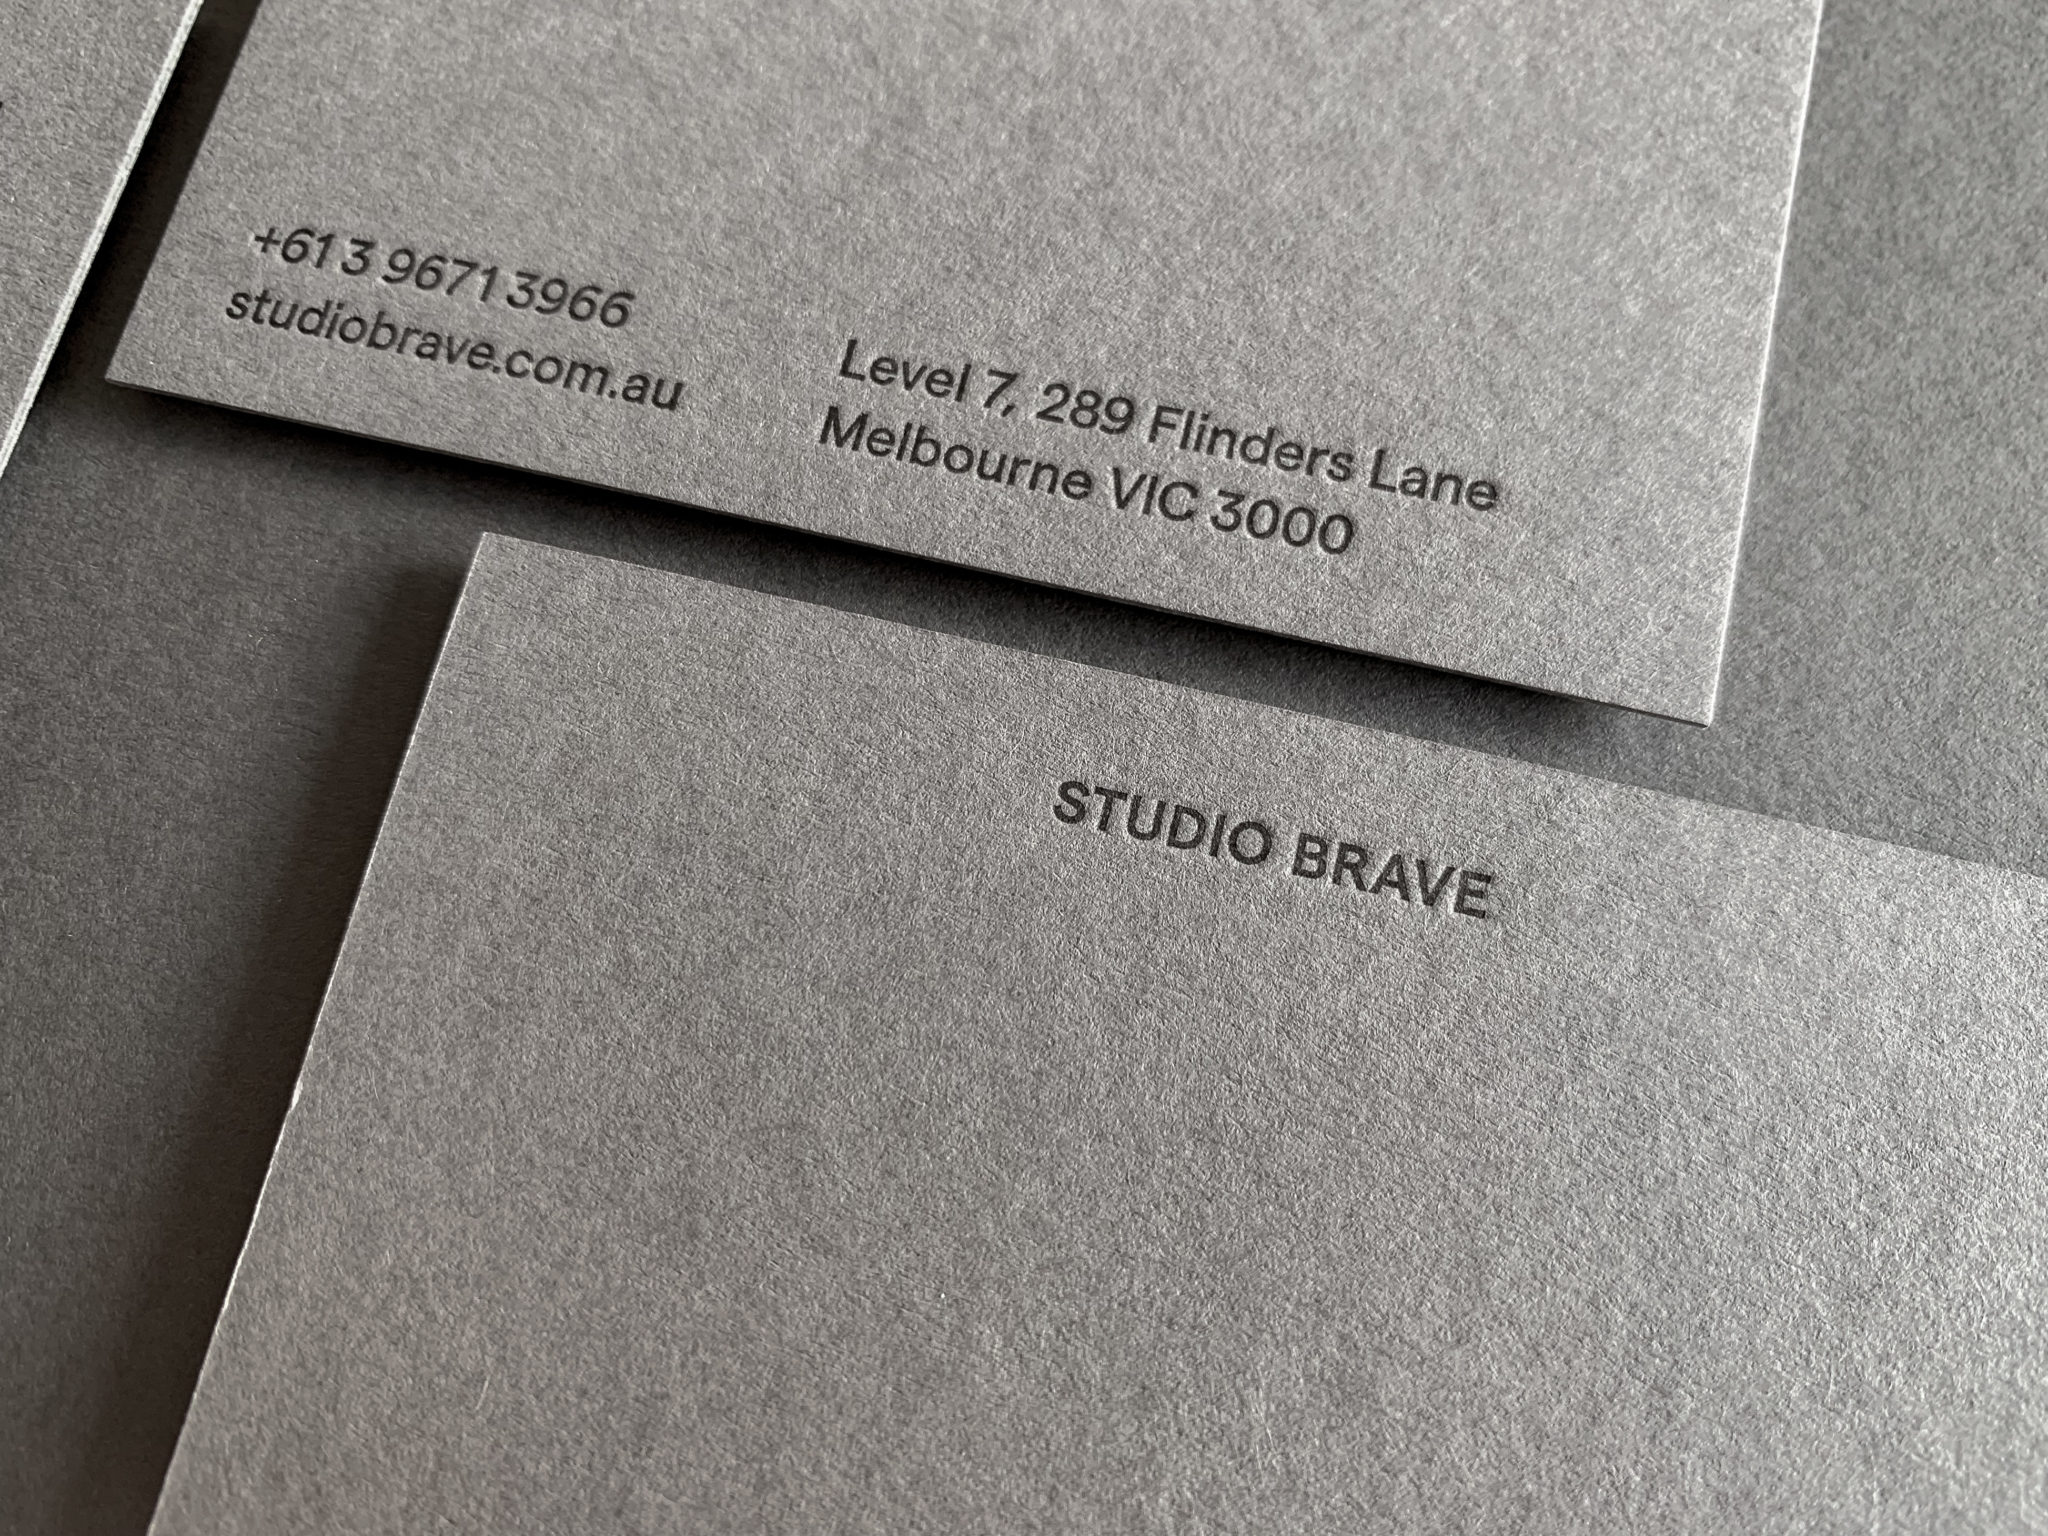 Letterpress Business Card for Studio Brave on Colorplan Smoke 2